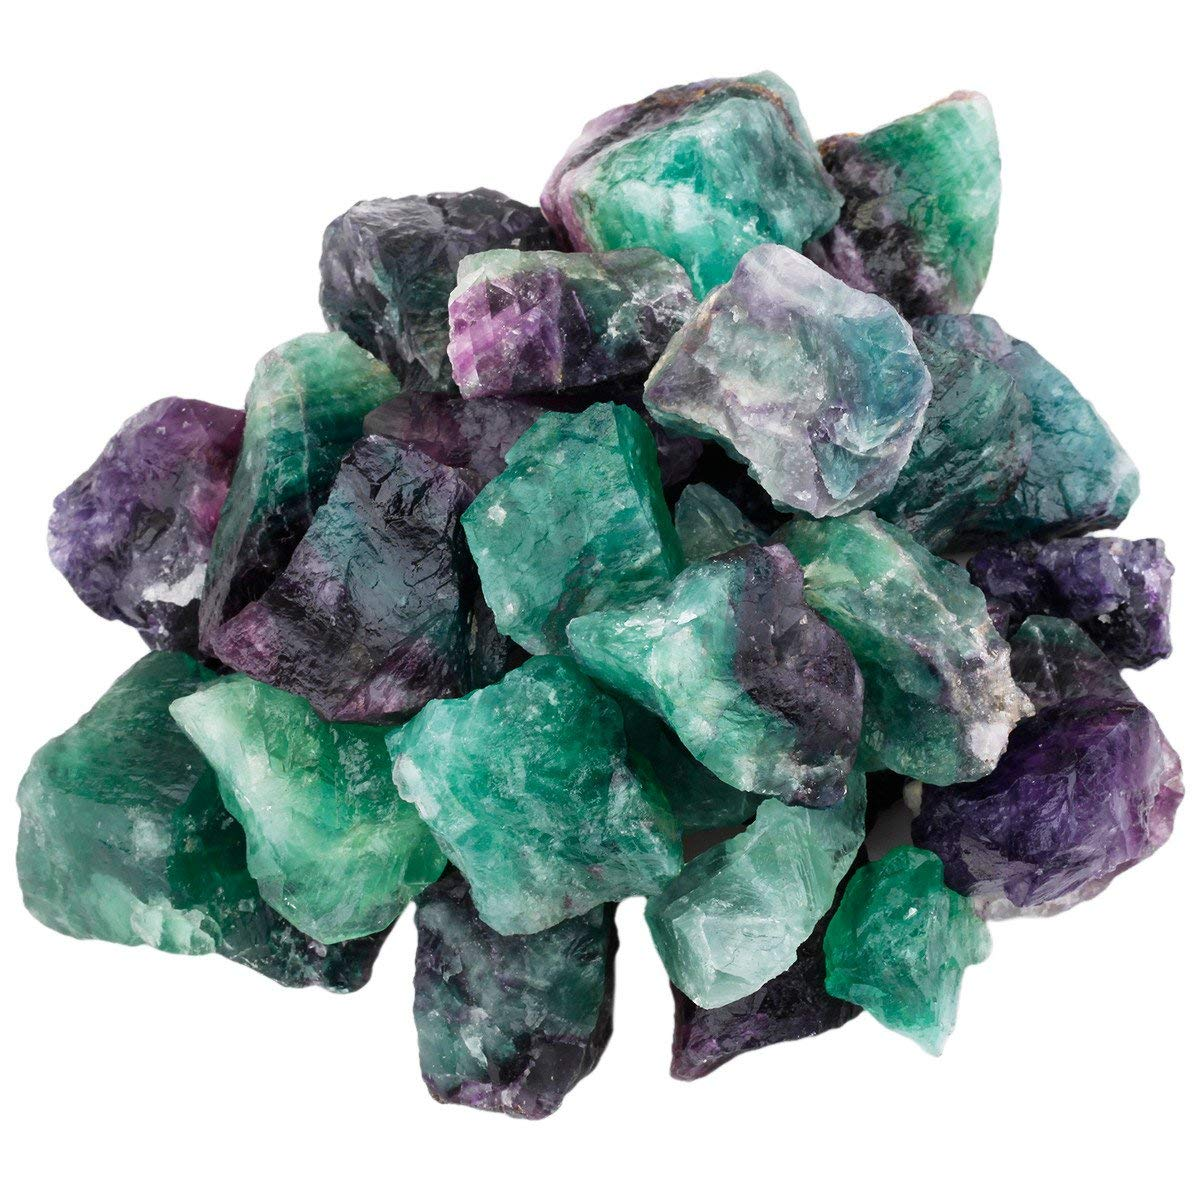 Fluorite - Crystals for Protection